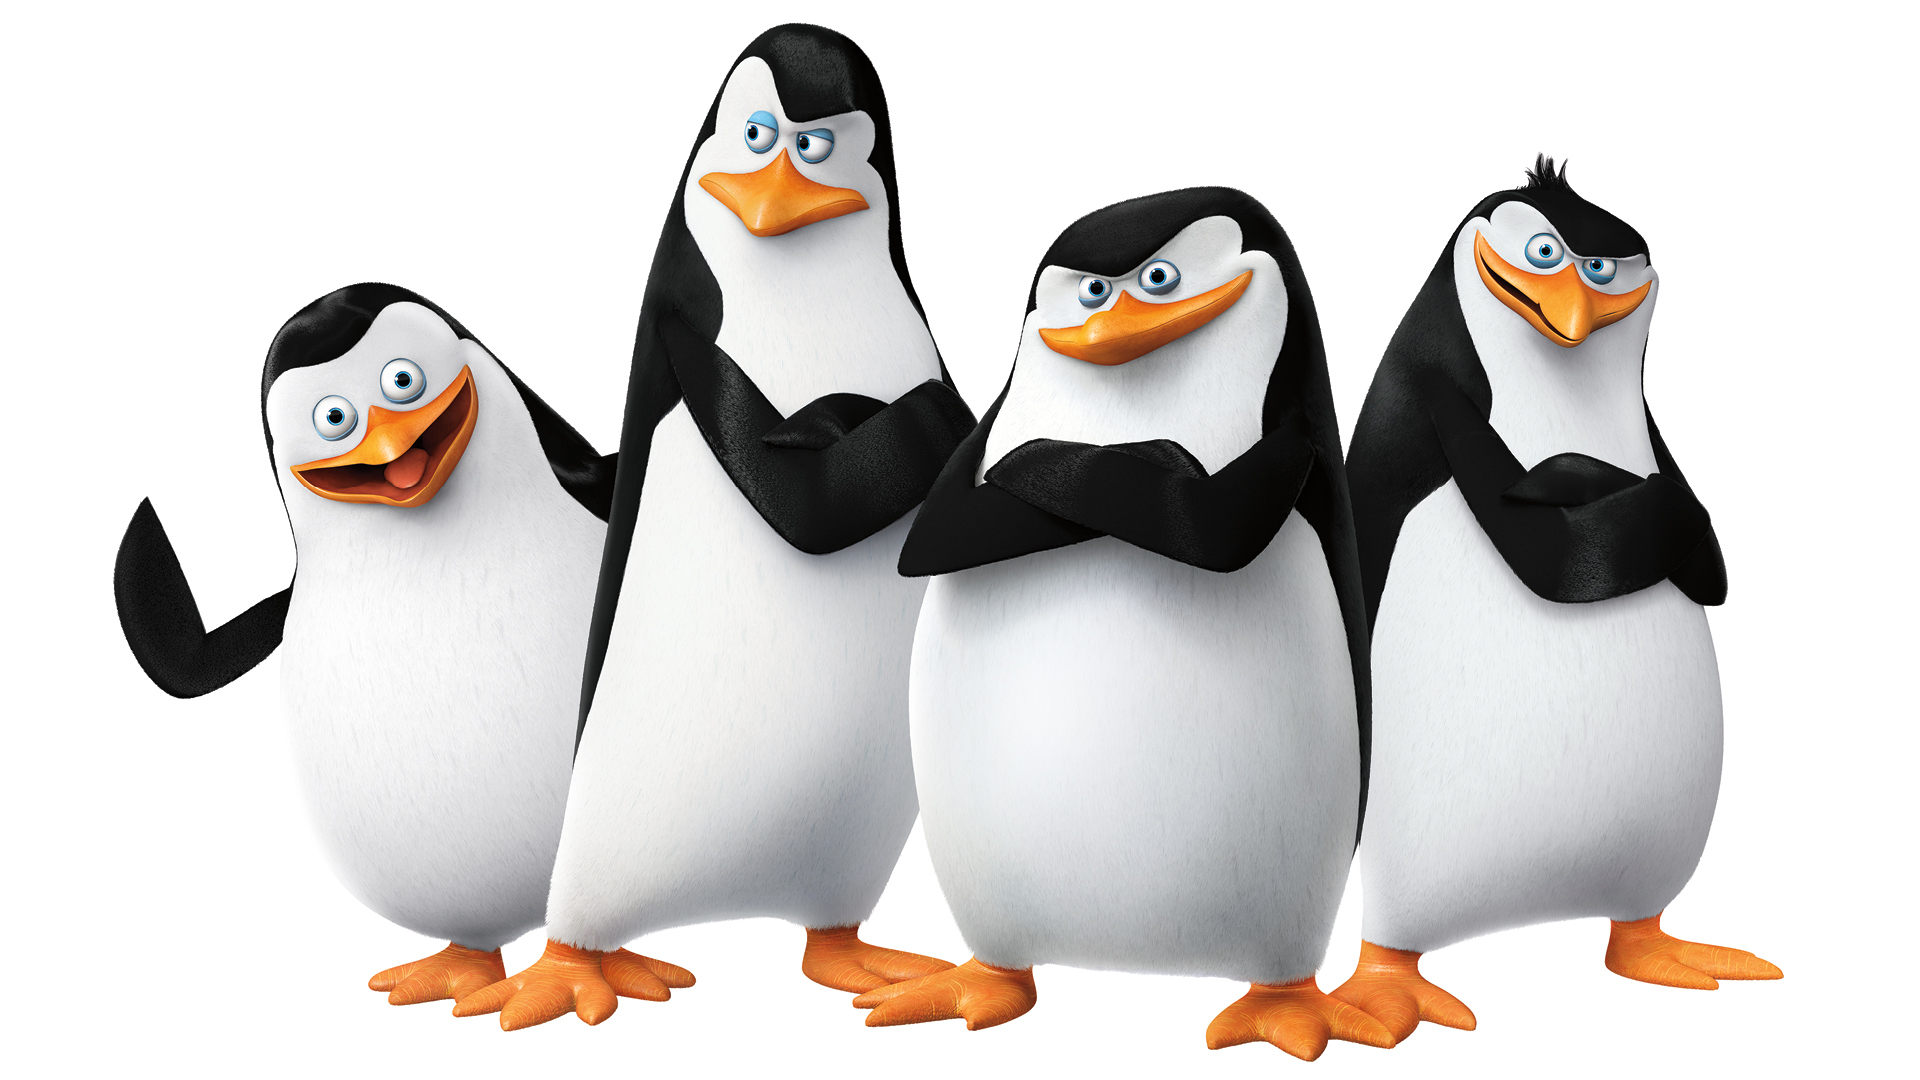 Image   The Penguins Of Madagascar.jpg   Animal Jam Clans Wiki   Fandom Powered By Wikia - Penguin, Transparent background PNG HD thumbnail